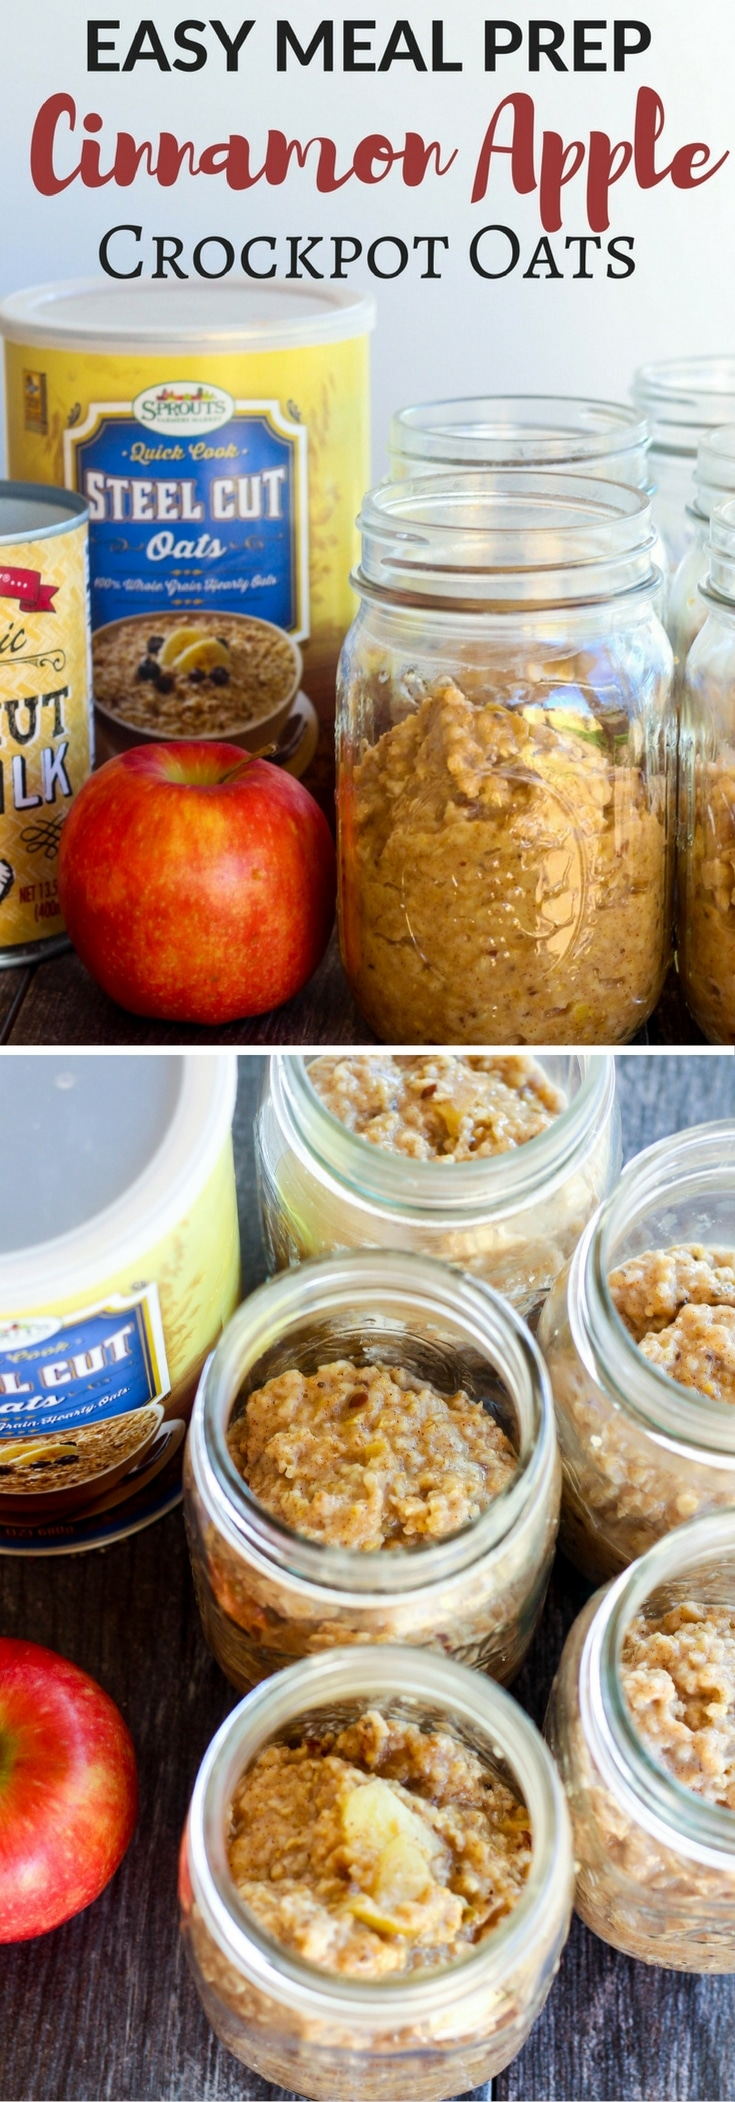 Apple Cinnamon Crockpot Steel Cut Oats are creamy, hearty, and easily prepared to feed the whole family or meal prep for the week! Gluten Free & Vegan